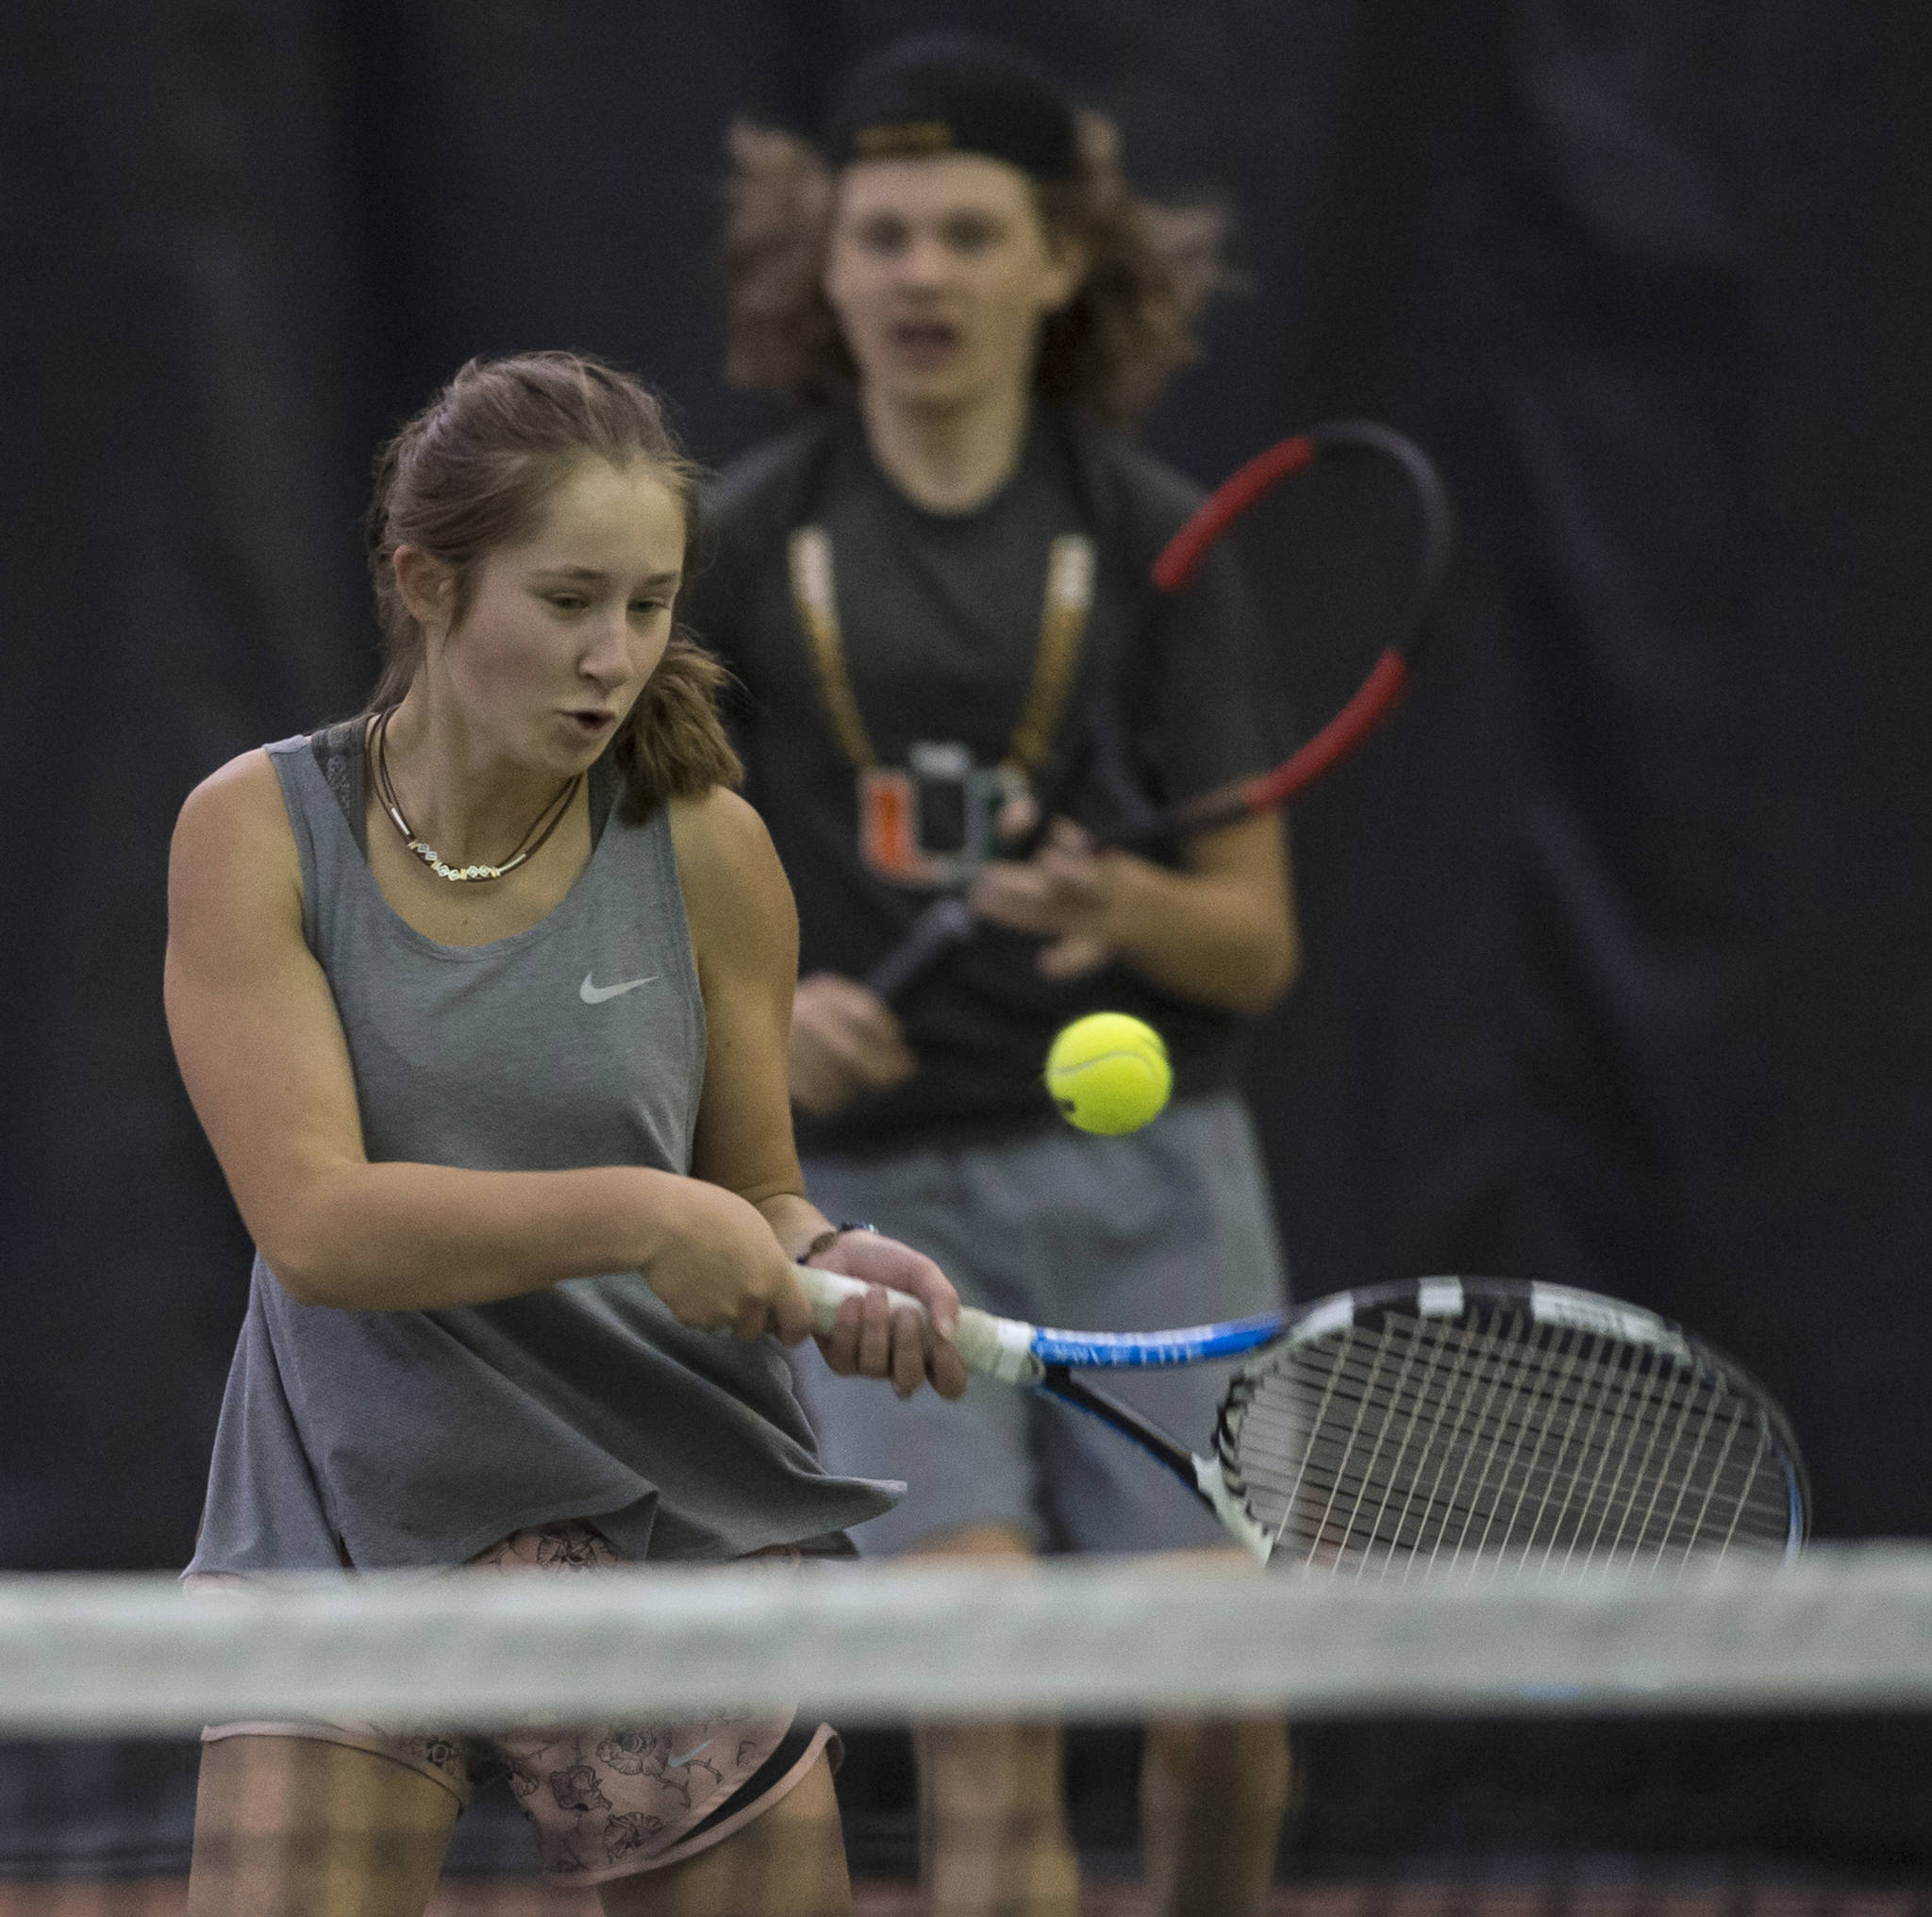 Adelie McMillan volleys a ball against the team of Olivia Moore and River Reyes-Boyles during the Regional Tennis Championships at the JRC/The Alaska Club on Saturday. McMillian is backed up by her partner Wolf Dostal in the mixed doubles match. (Michael Penn | Juneau Empire)